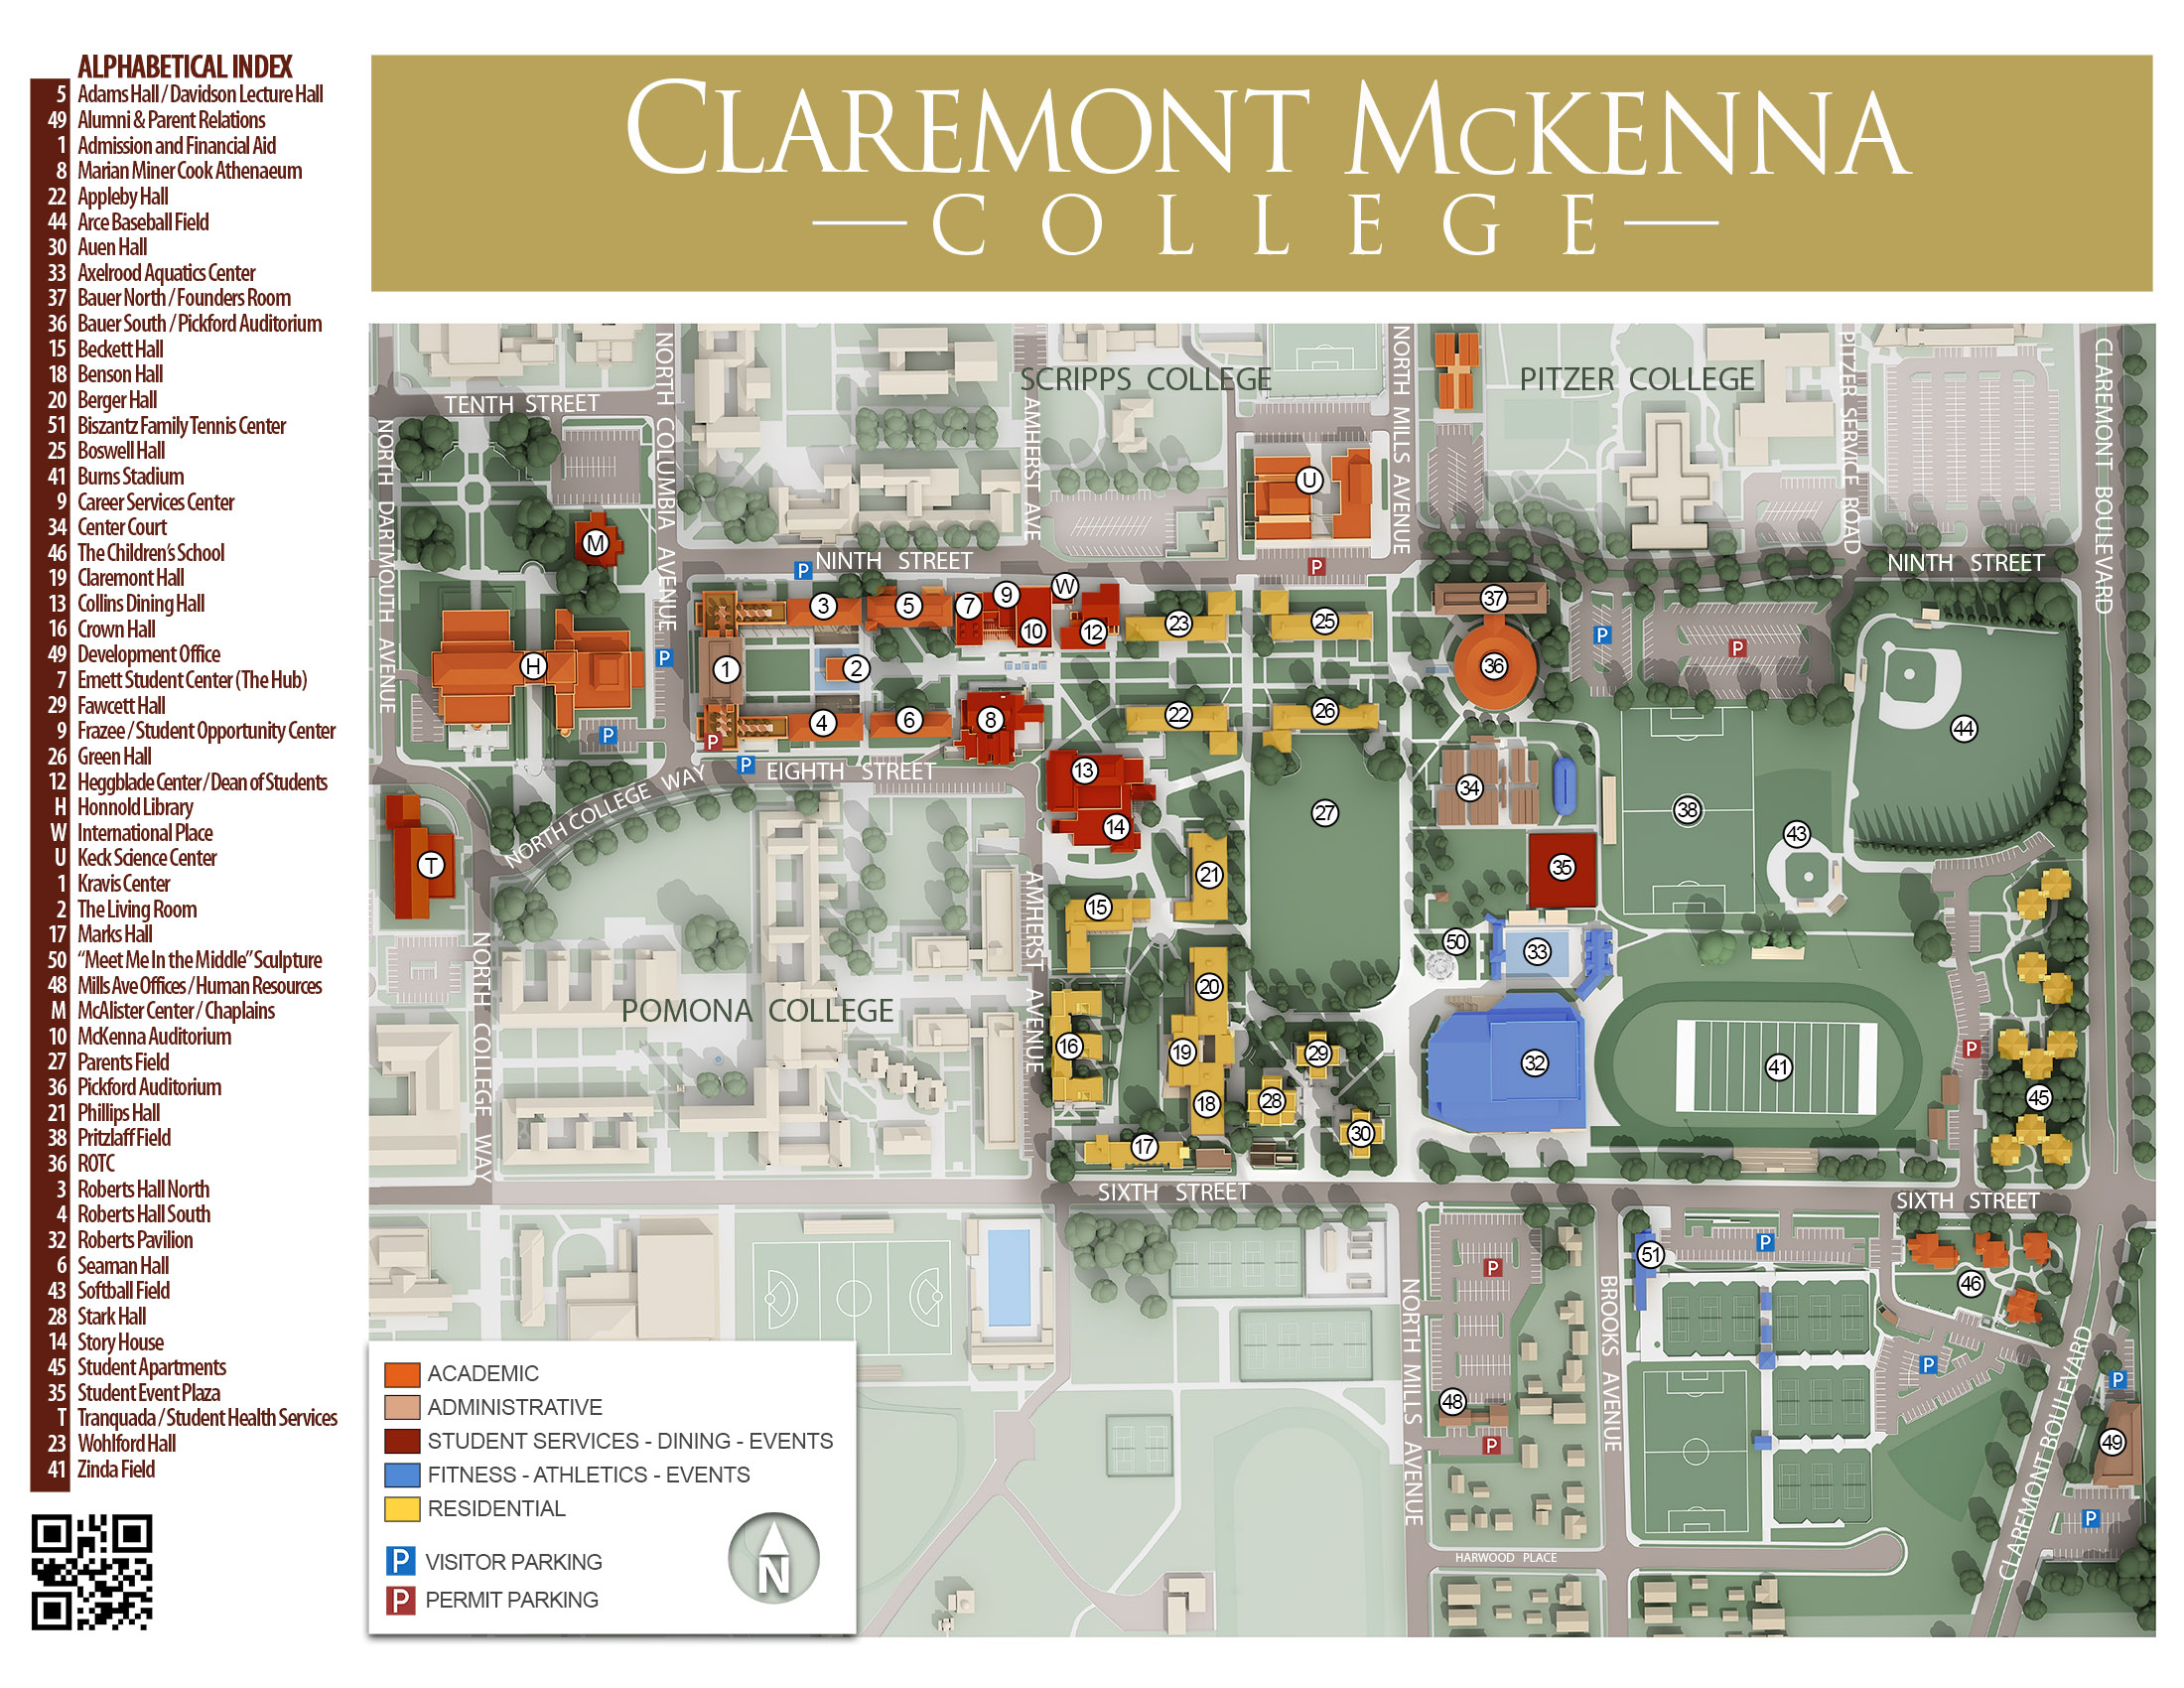 Cmc Campus Maps | Claremont Mckenna College - California Institute Of The Arts Campus Map